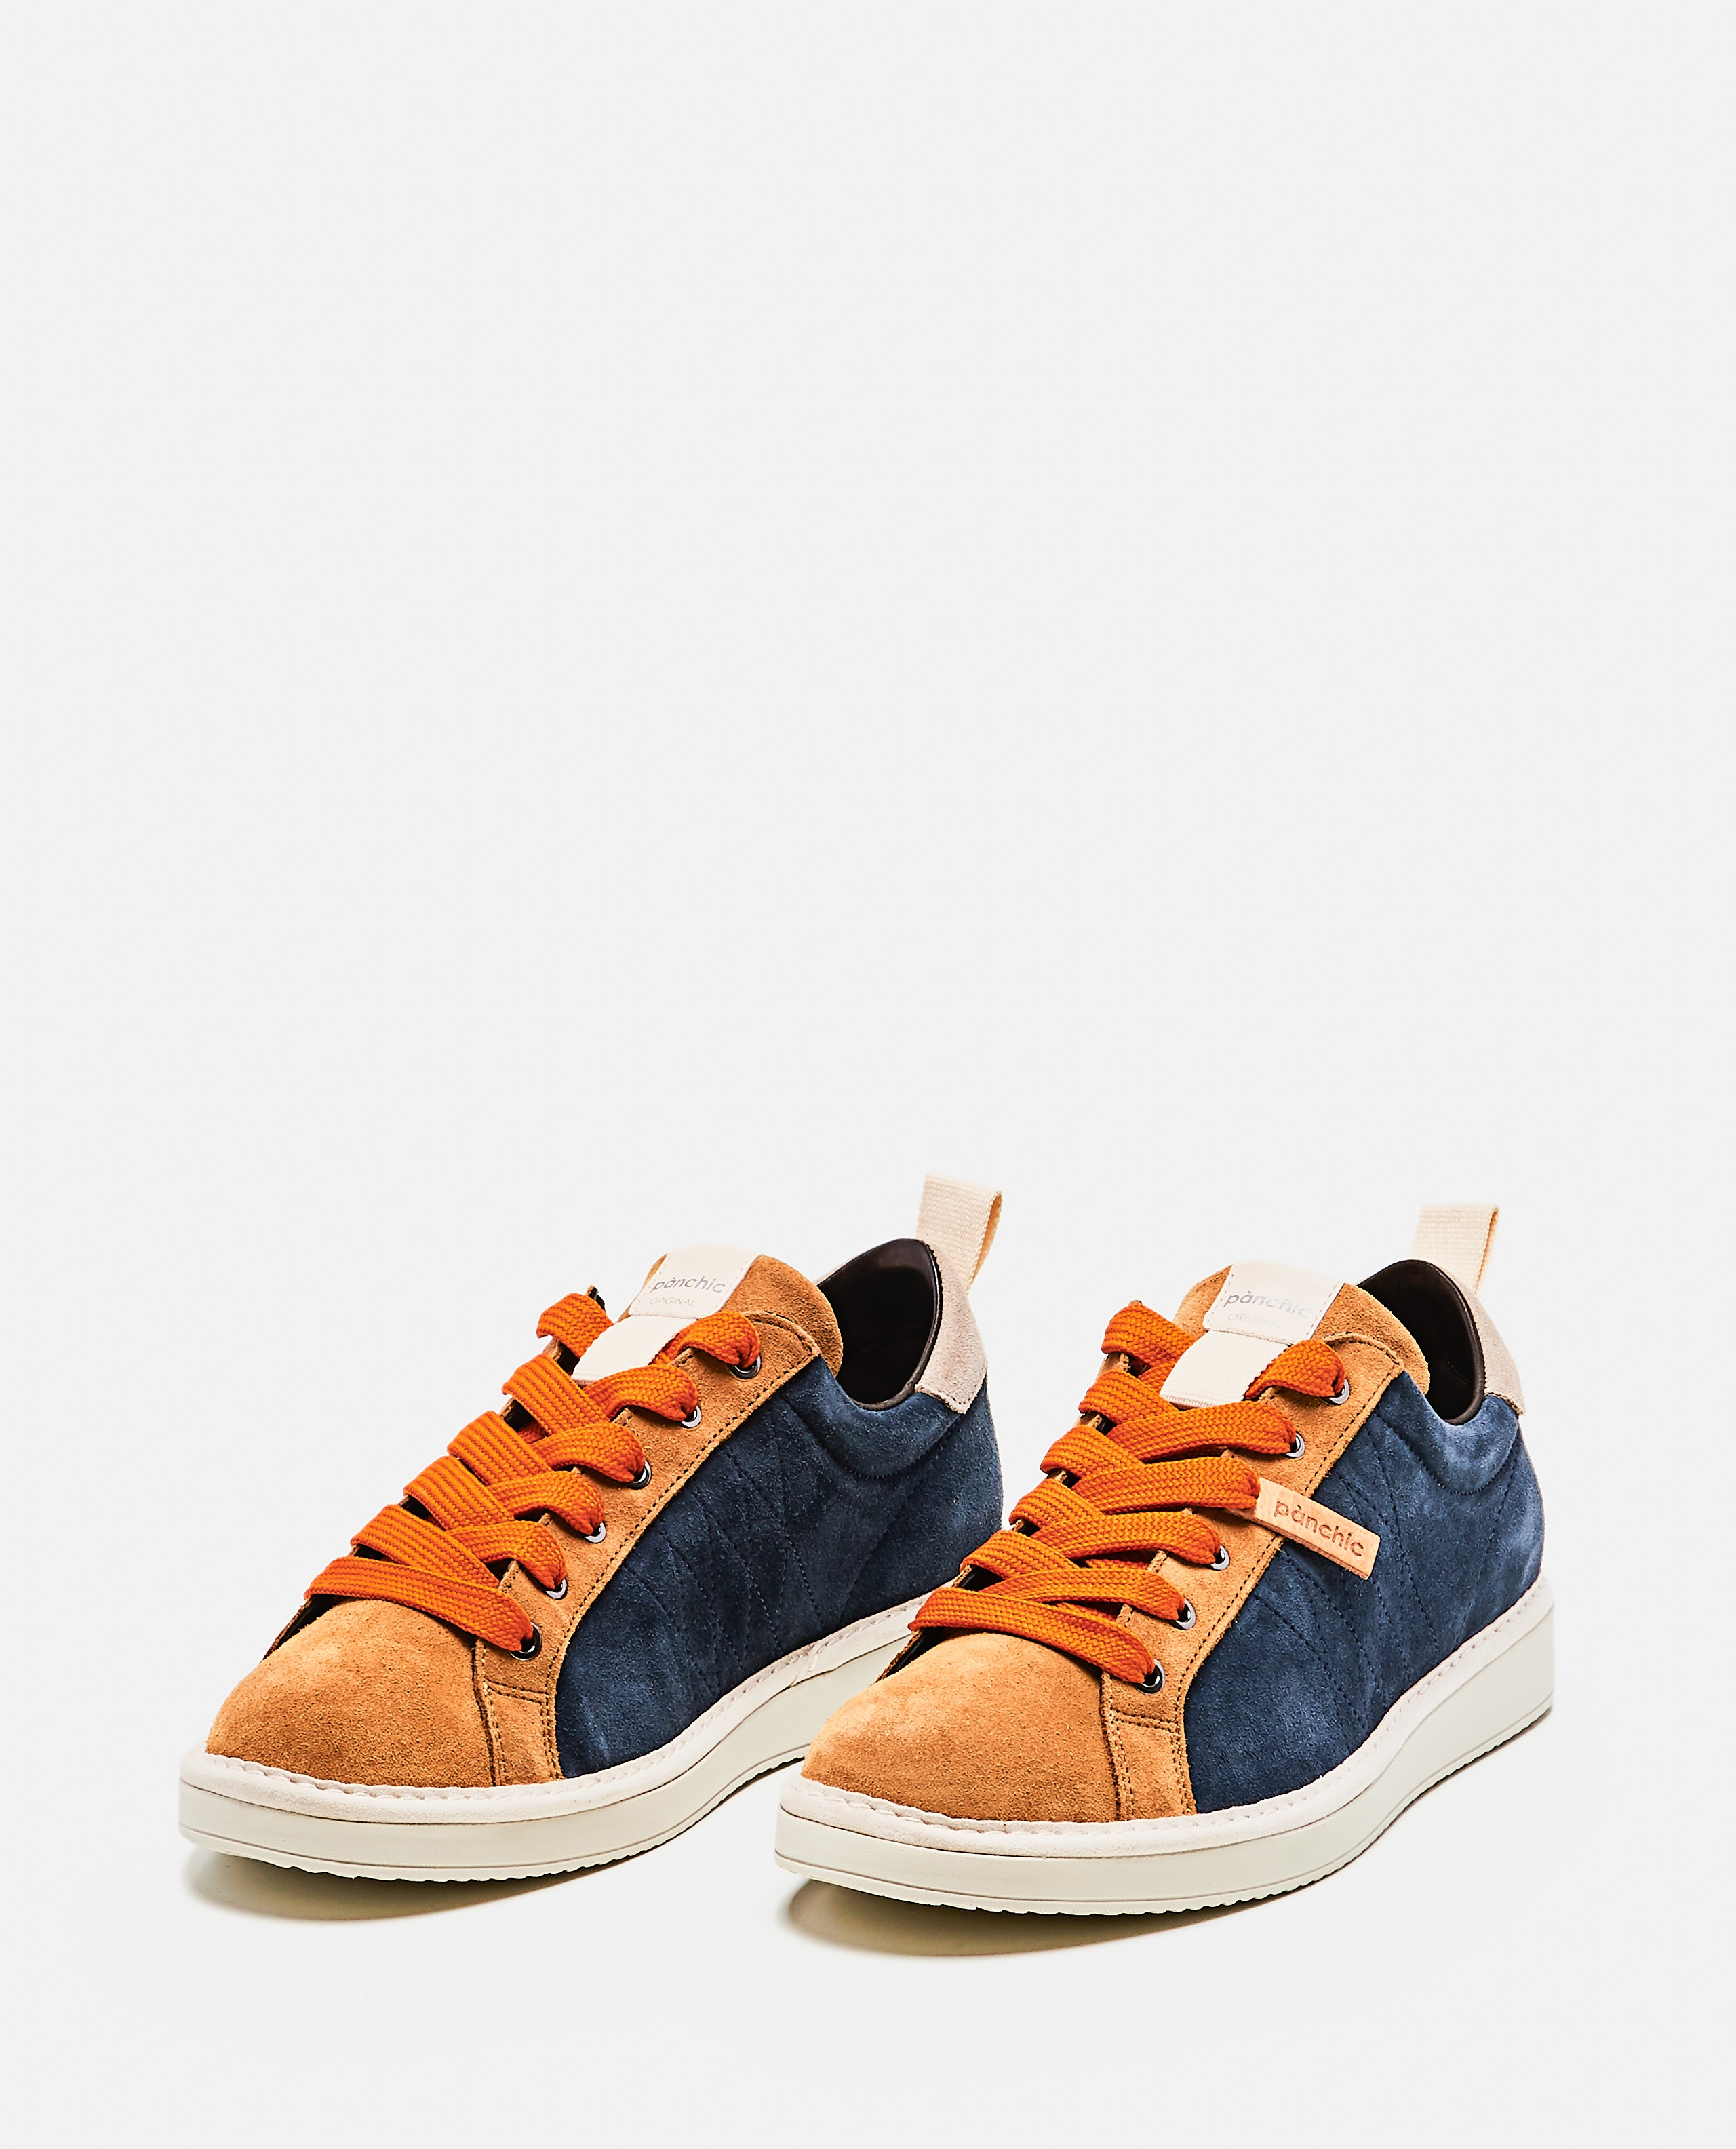 Sneakers in pelle Uomo Panchic 000278450041047 2